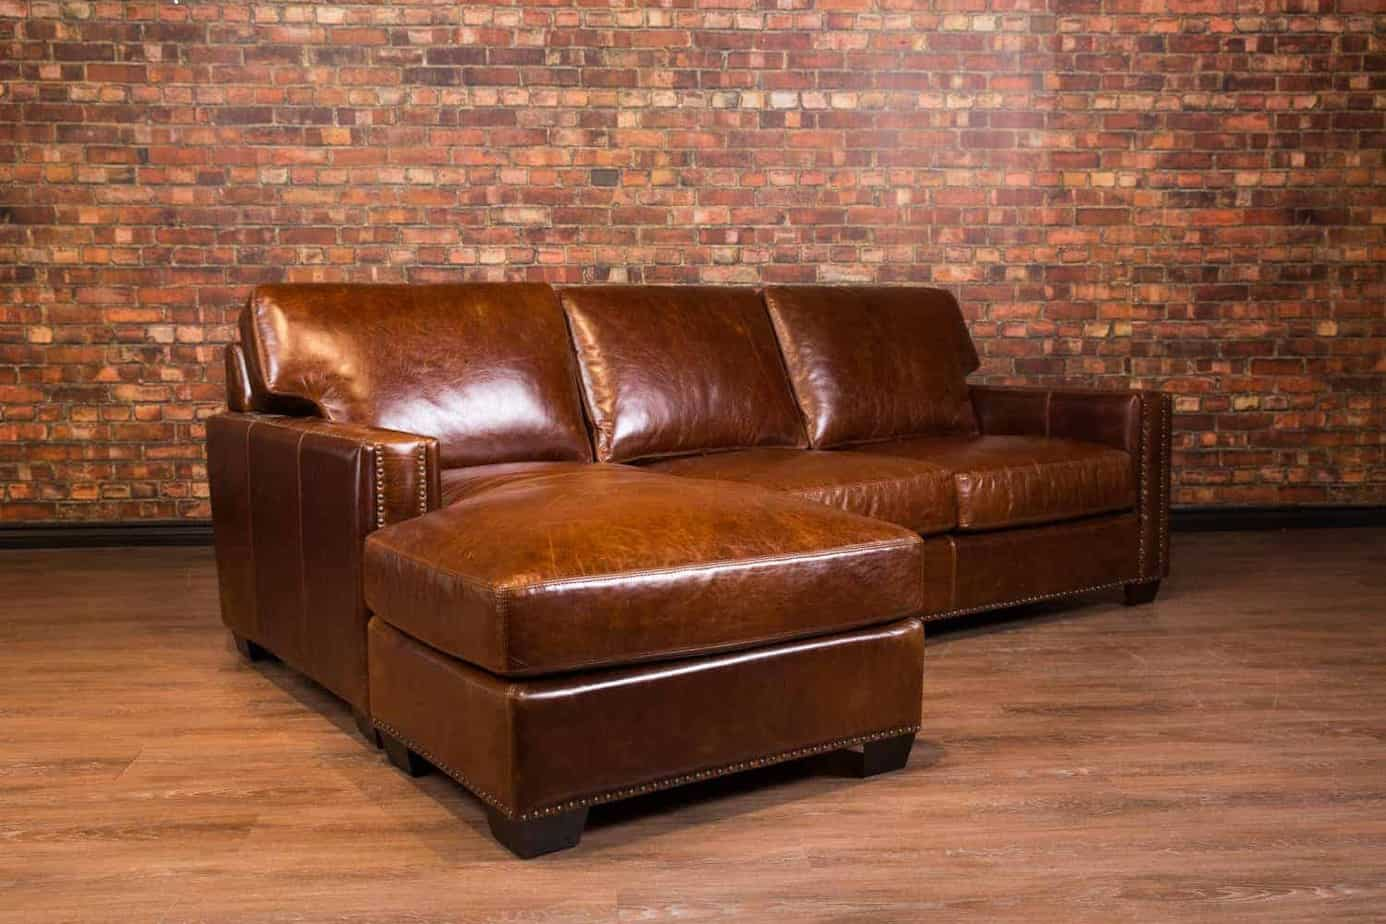 Maxell Deep Seat Leather Chaise Canada S Boss Leather Sofas And Furniture